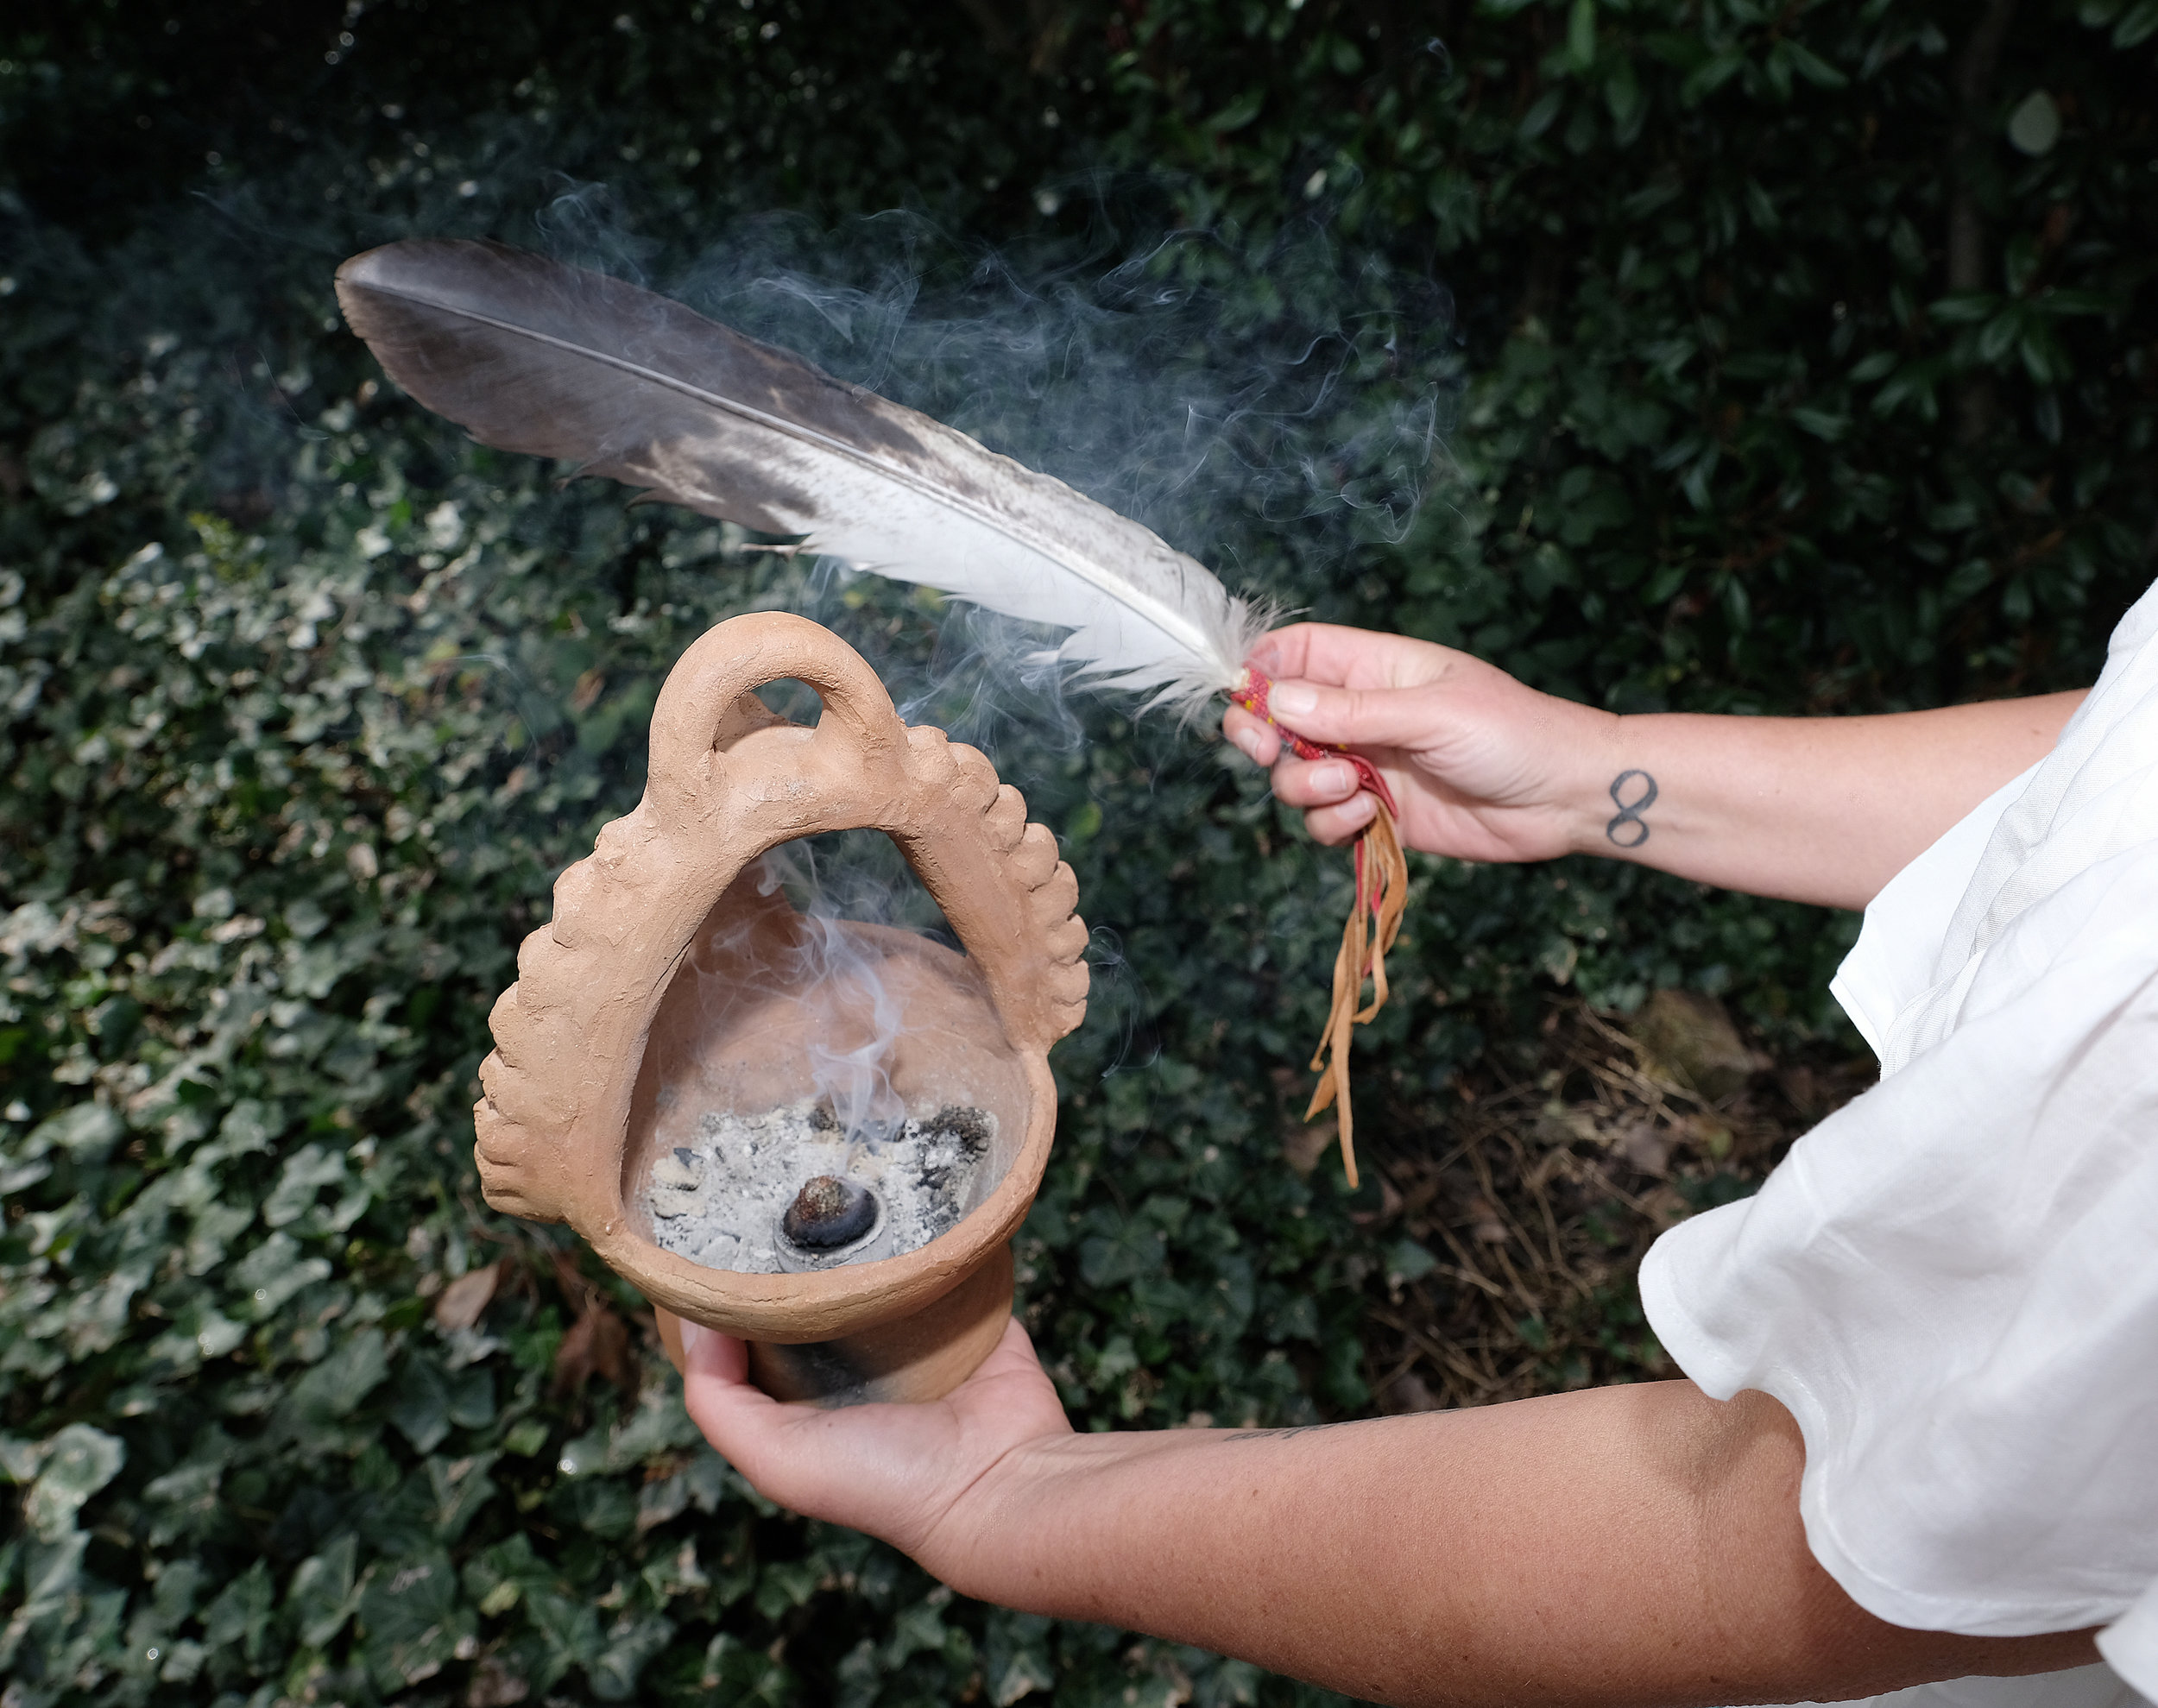 Pleiadians shamanic smudge with smoke and bird feather